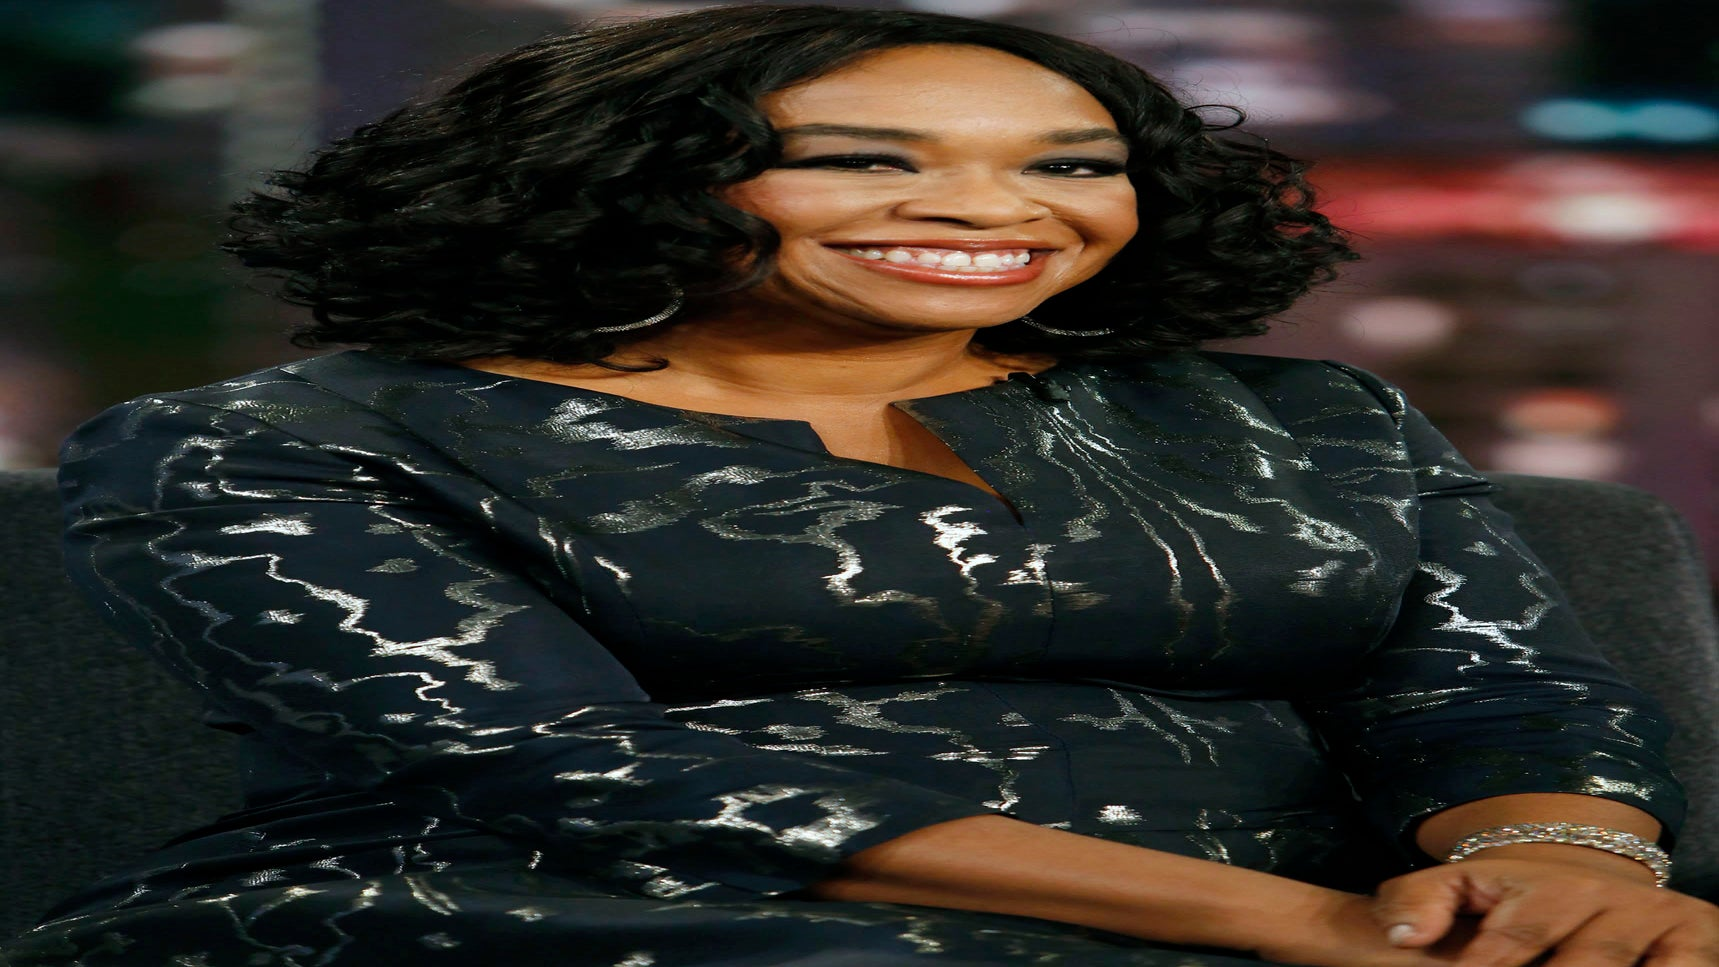 Shonda Rhimes Signs on to Produce Her 7th Show for ABC